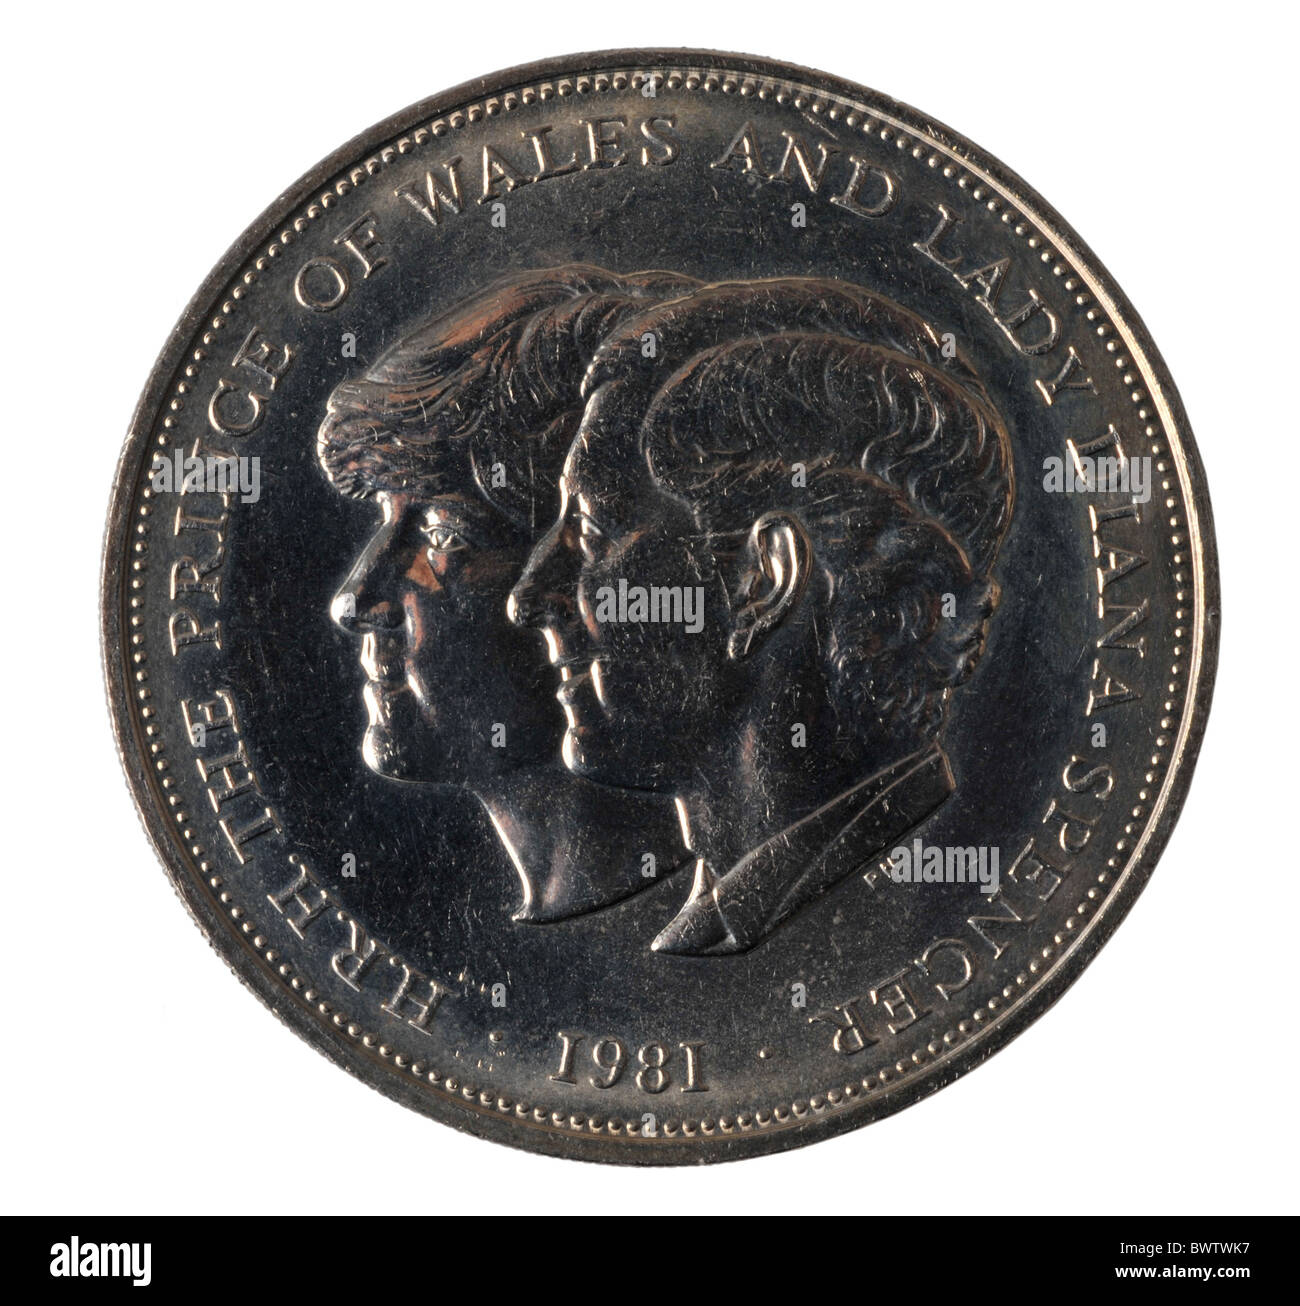 Commemorative coin celebrating the marriage of Prince Charles and Lady Diana - Stock Image